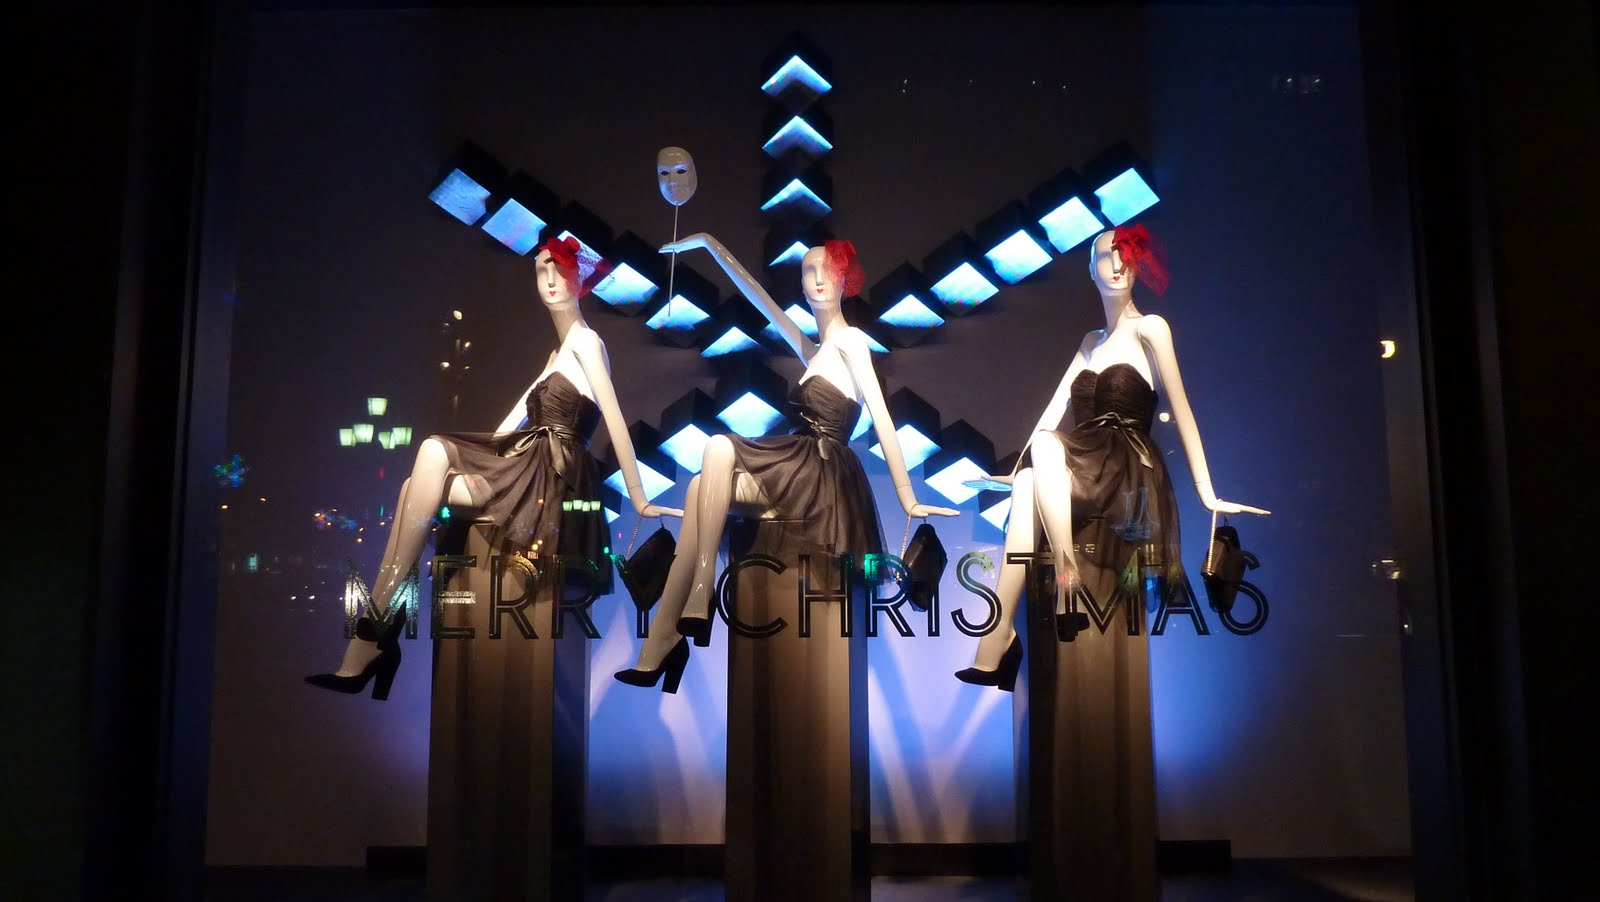 Iluminacion Escaparates Javipop Visual My Top Barcelona Holiday Windows